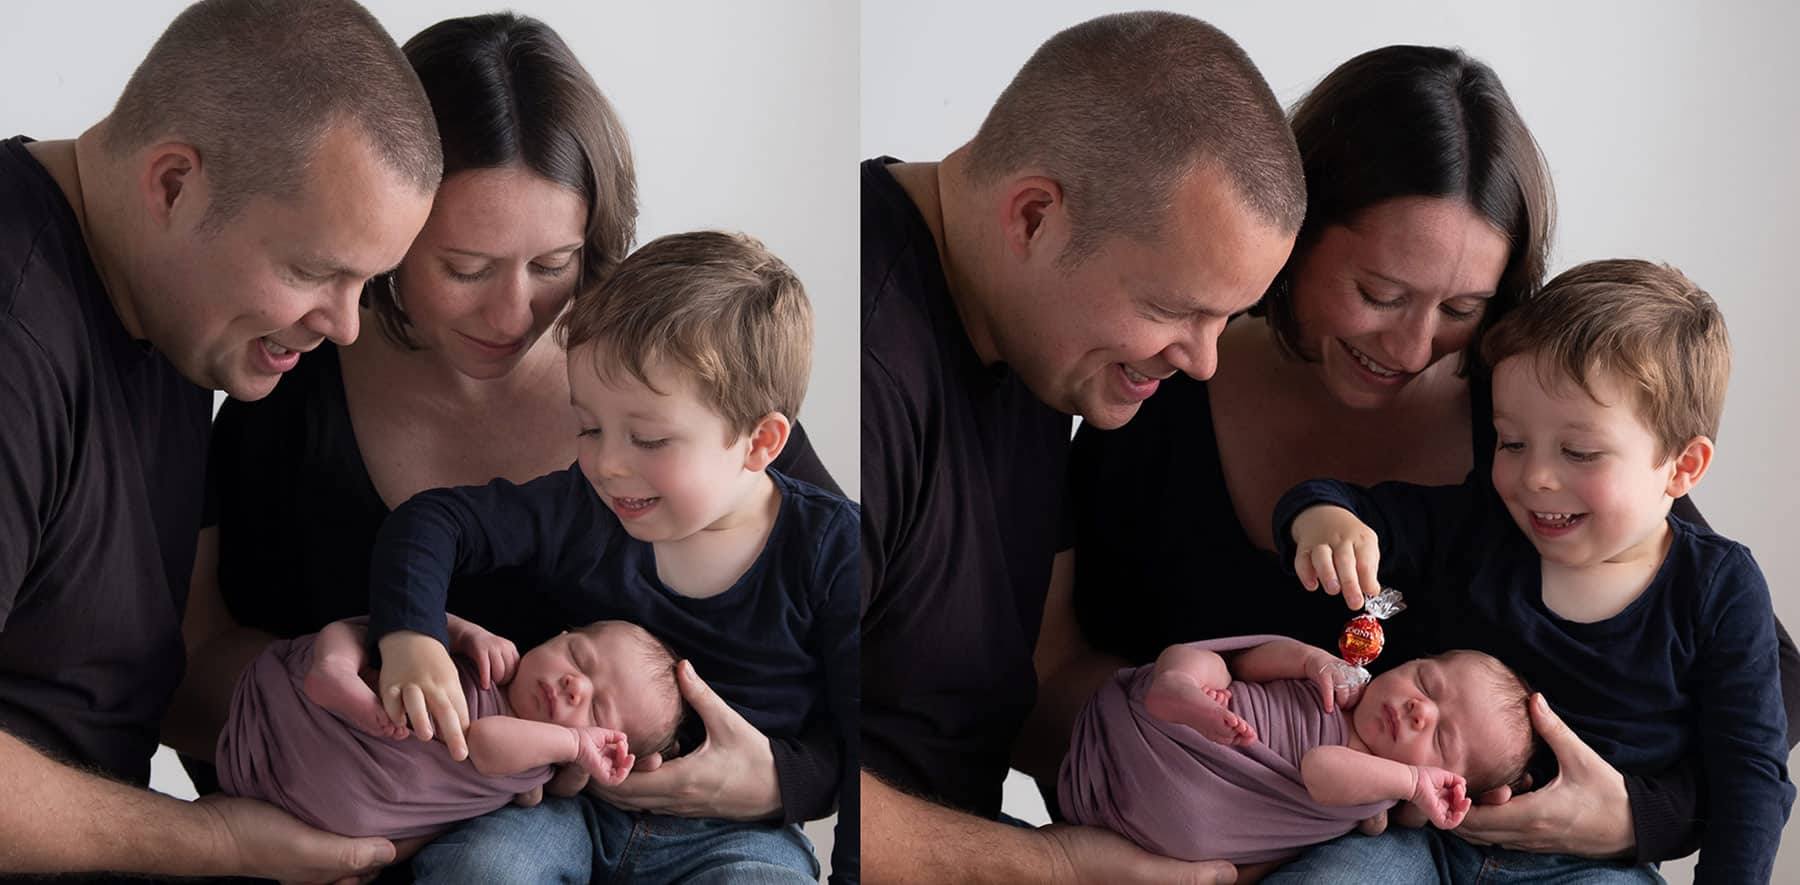 Sibling photos with newborn baby How-To Guide 29